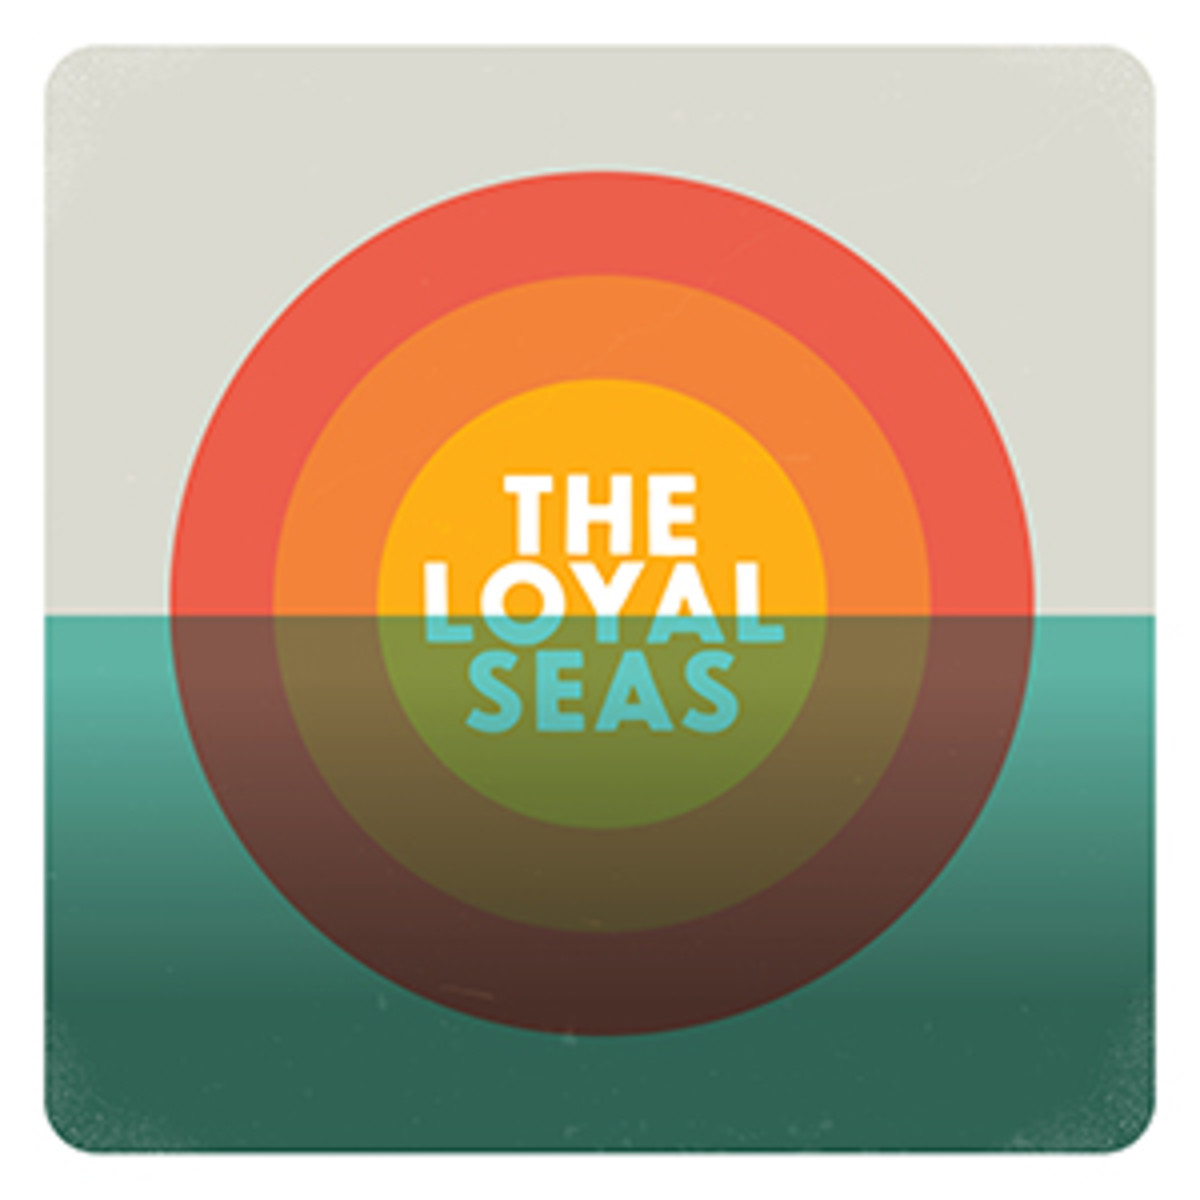 The Loyal Seas - Image A - for Internal Site Page